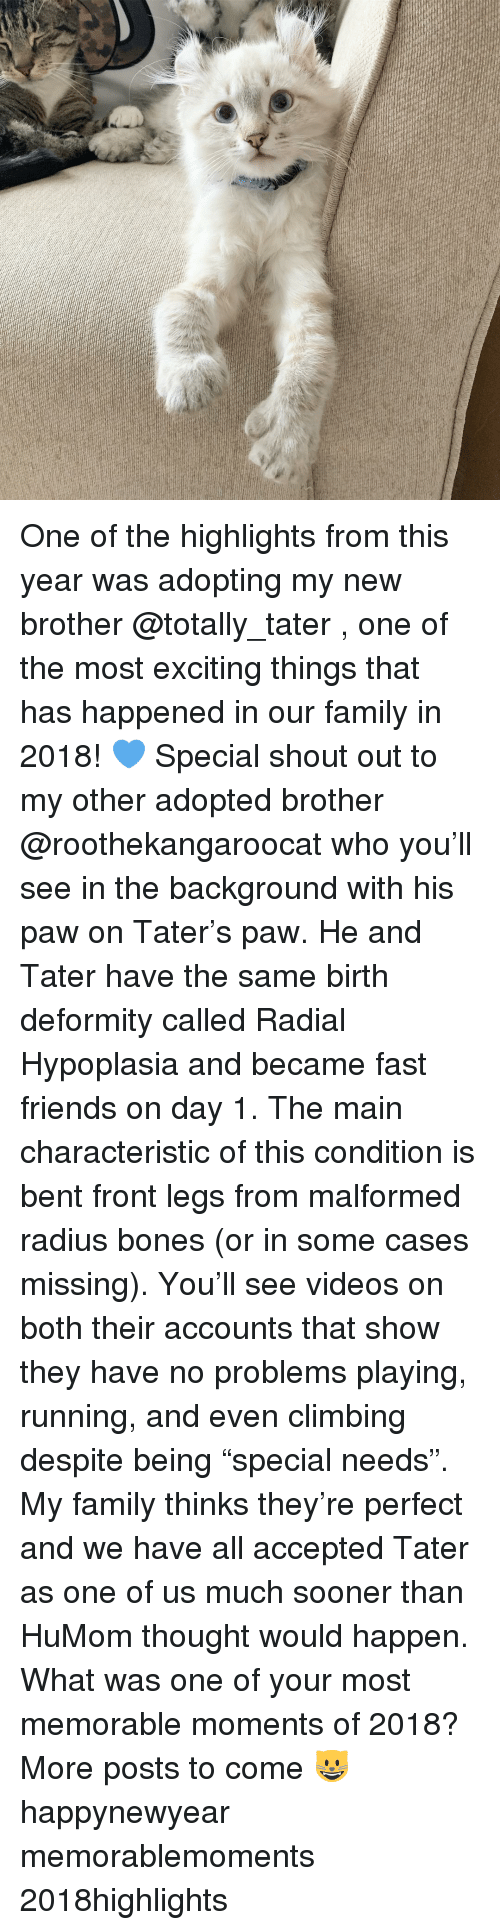 """no problems: One of the highlights from this year was adopting my new brother @totally_tater , one of the most exciting things that has happened in our family in 2018! 💙 Special shout out to my other adopted brother @roothekangaroocat who you'll see in the background with his paw on Tater's paw. He and Tater have the same birth deformity called Radial Hypoplasia and became fast friends on day 1. The main characteristic of this condition is bent front legs from malformed radius bones (or in some cases missing). You'll see videos on both their accounts that show they have no problems playing, running, and even climbing despite being """"special needs"""". My family thinks they're perfect and we have all accepted Tater as one of us much sooner than HuMom thought would happen. What was one of your most memorable moments of 2018? More posts to come 😺 happynewyear memorablemoments 2018highlights"""